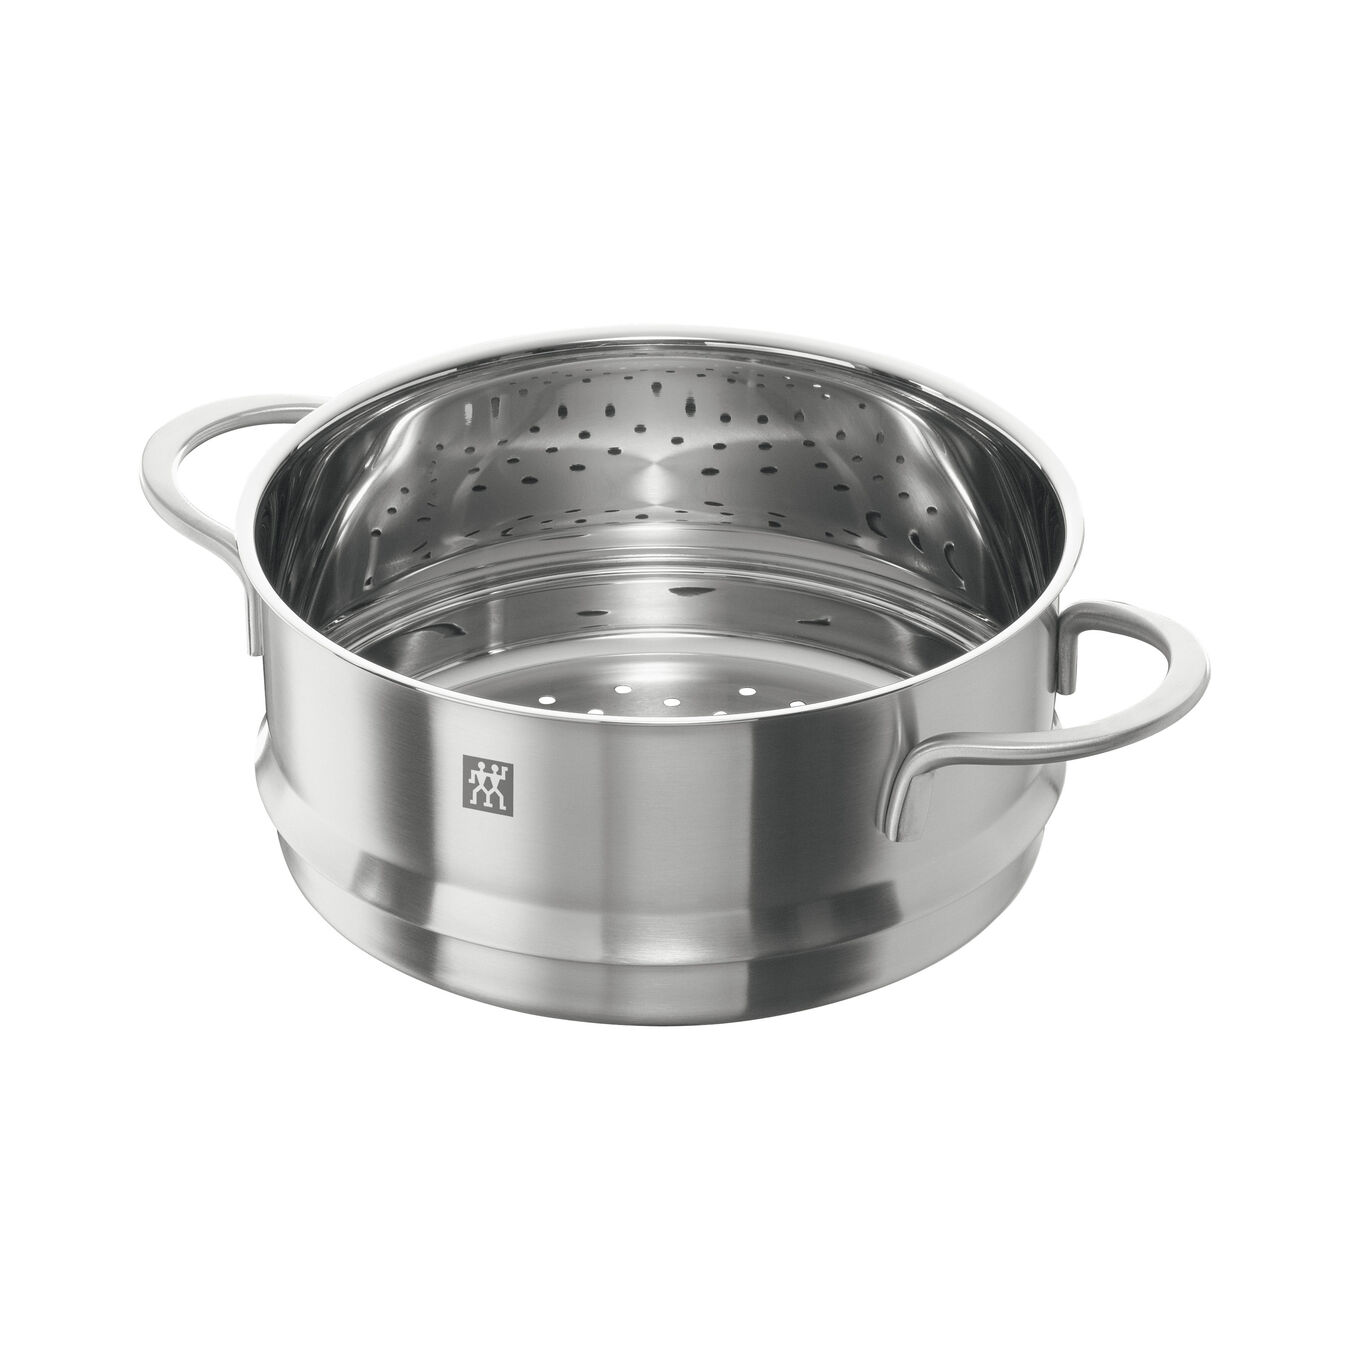 8 Piece 18/10 Stainless Steel Cookware set,,large 4